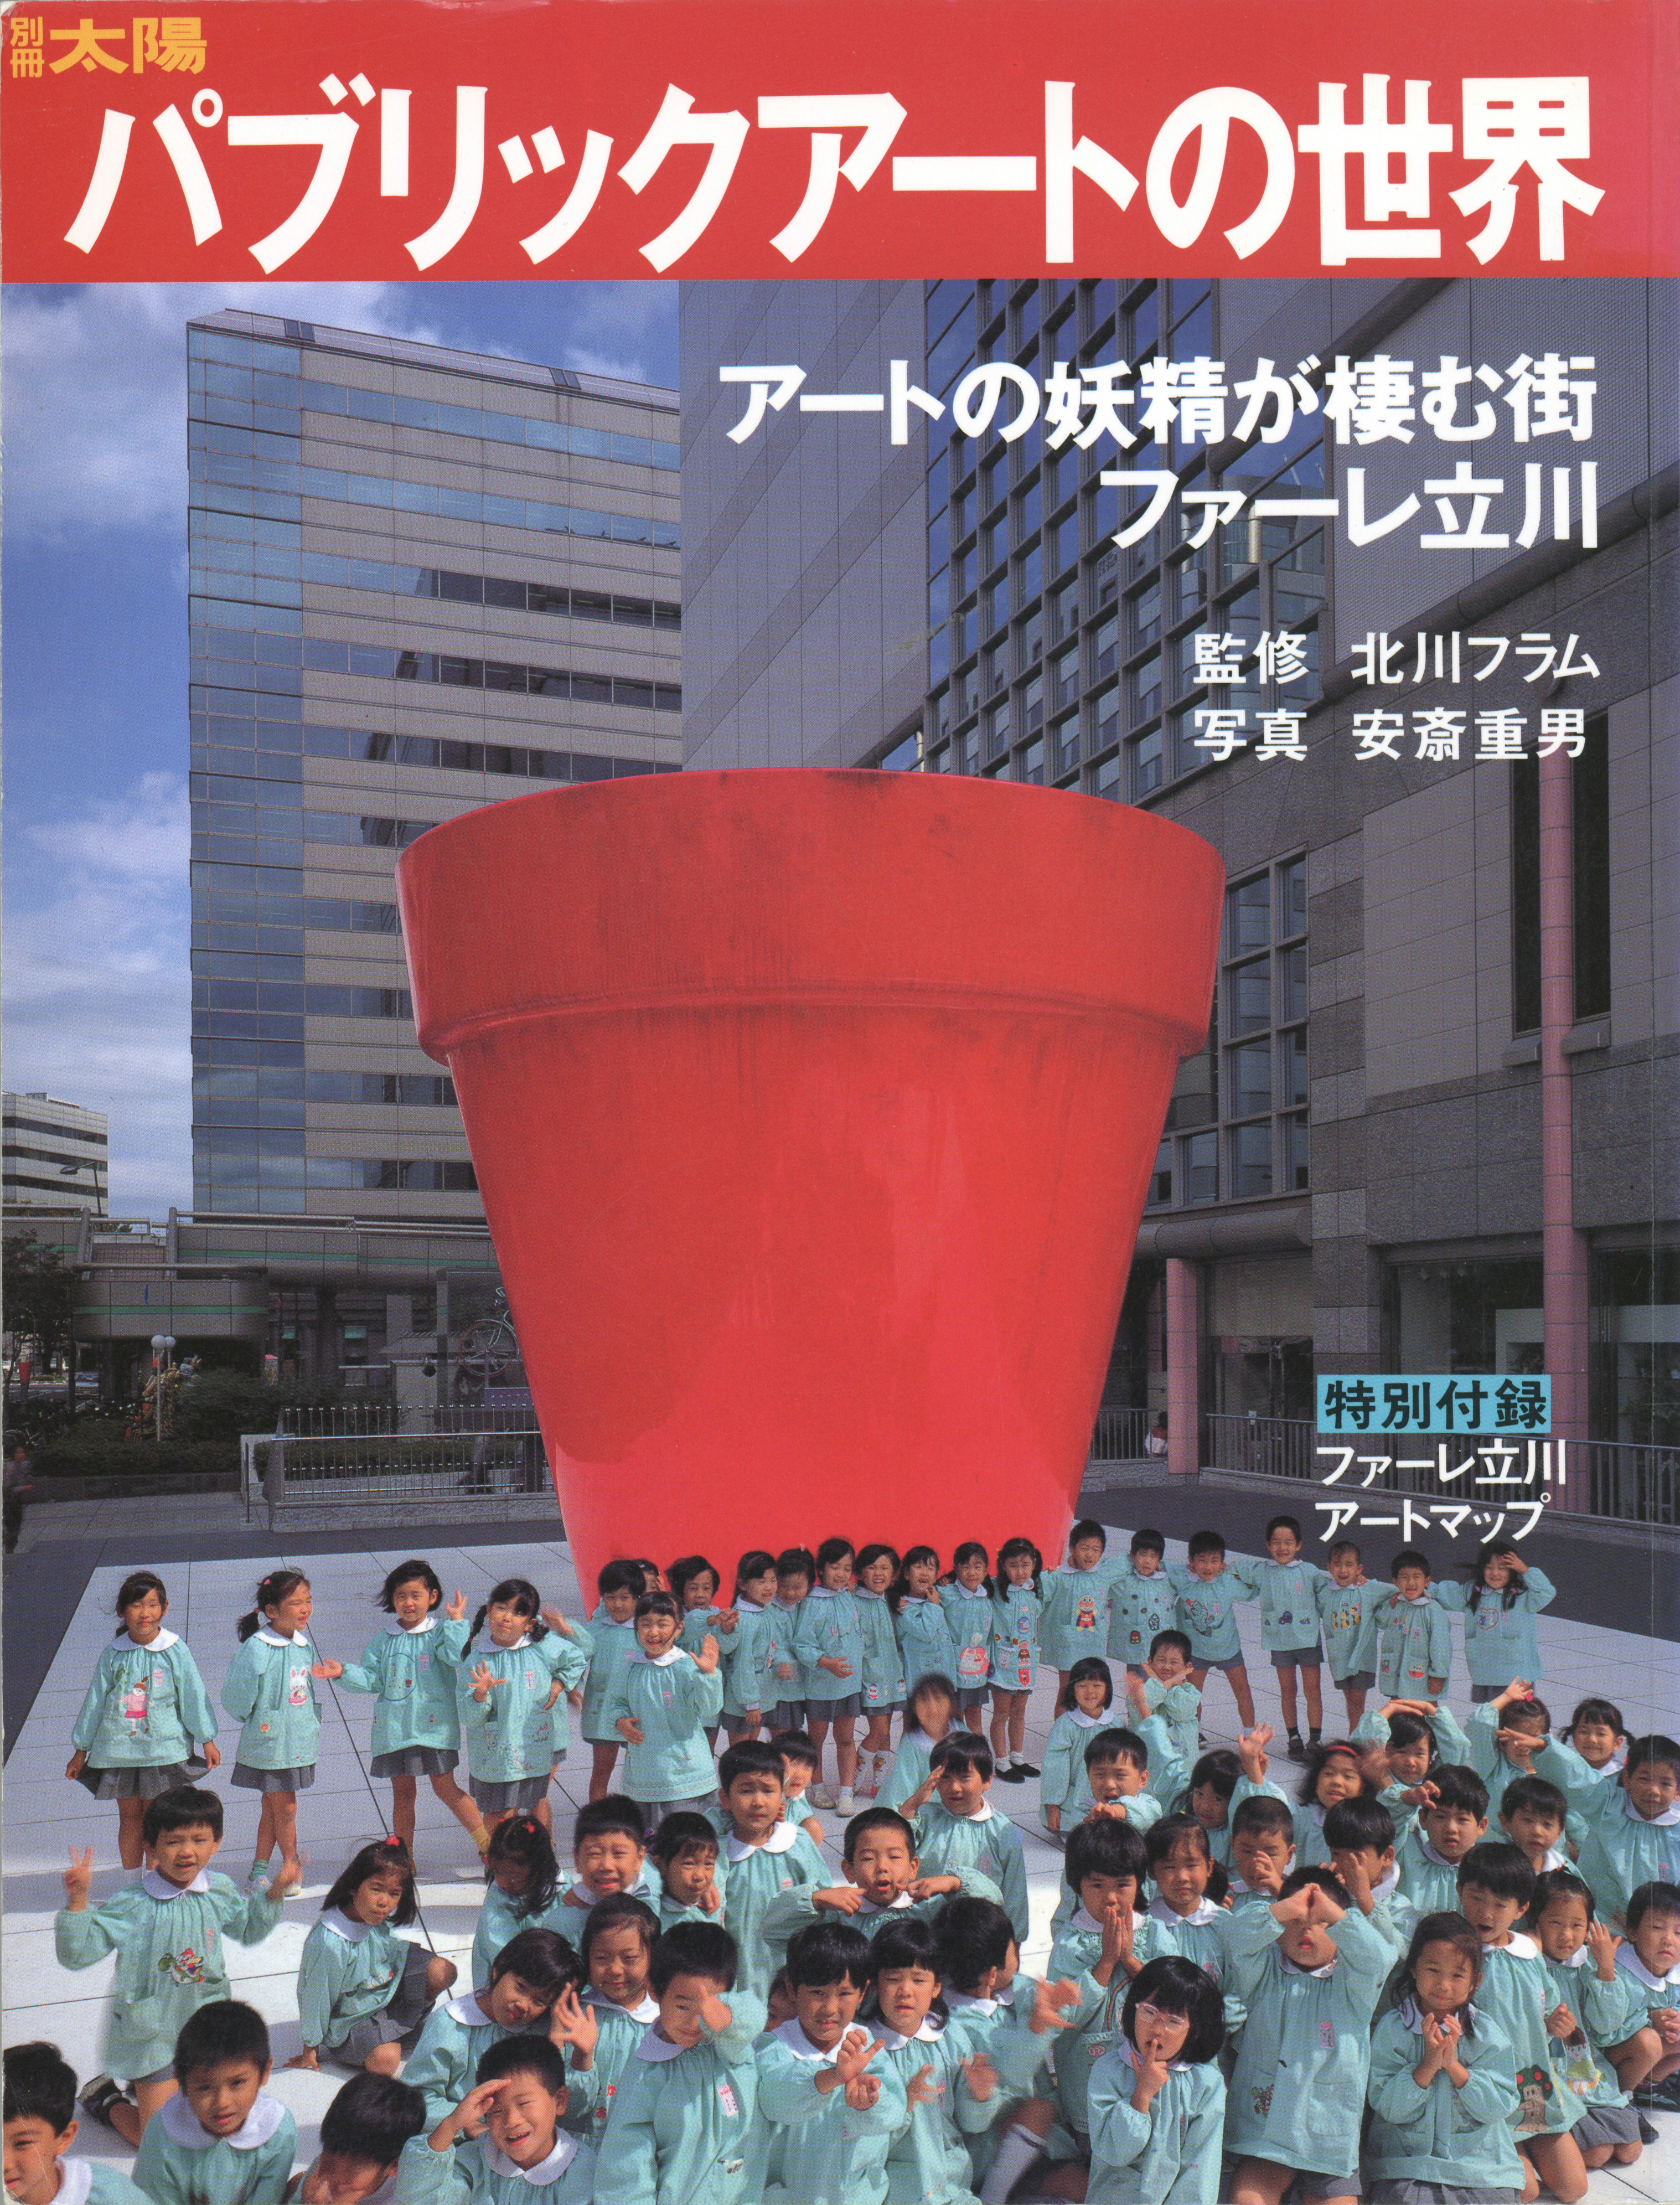 The cover of Paburikku āto no sekai [The World of Public Art] (Tokyo: Heibonsha, 1995).